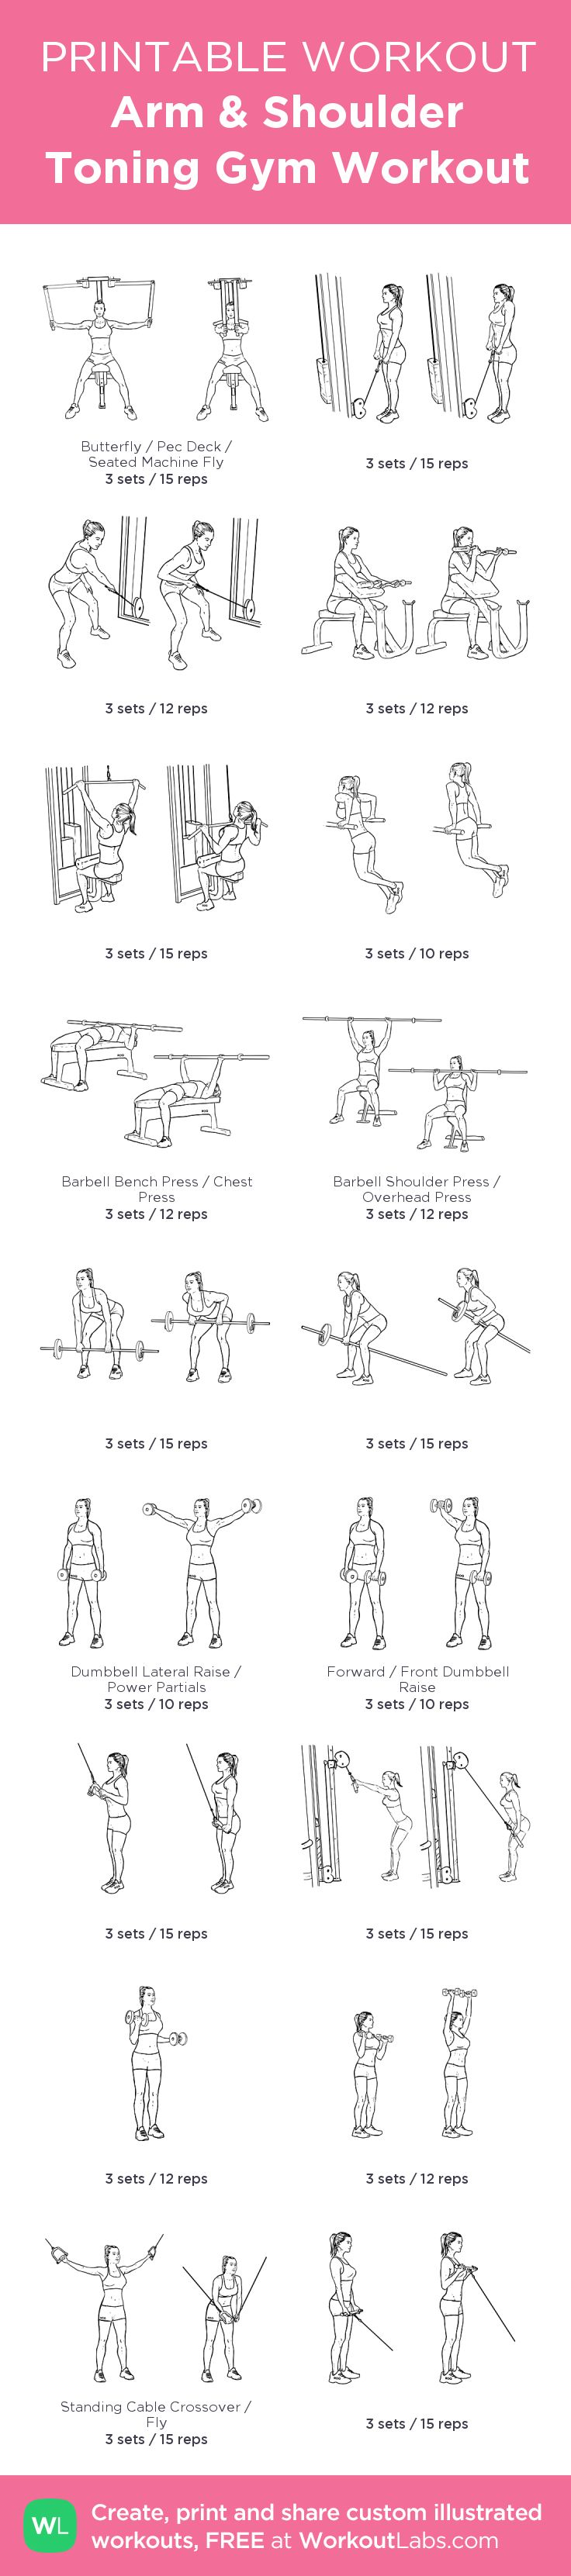 Arm & Shoulder Toning Gym Workout: my visual workout created at WorkoutLabs.com • Click through to customize and download as a FREE PDF! #customworkout